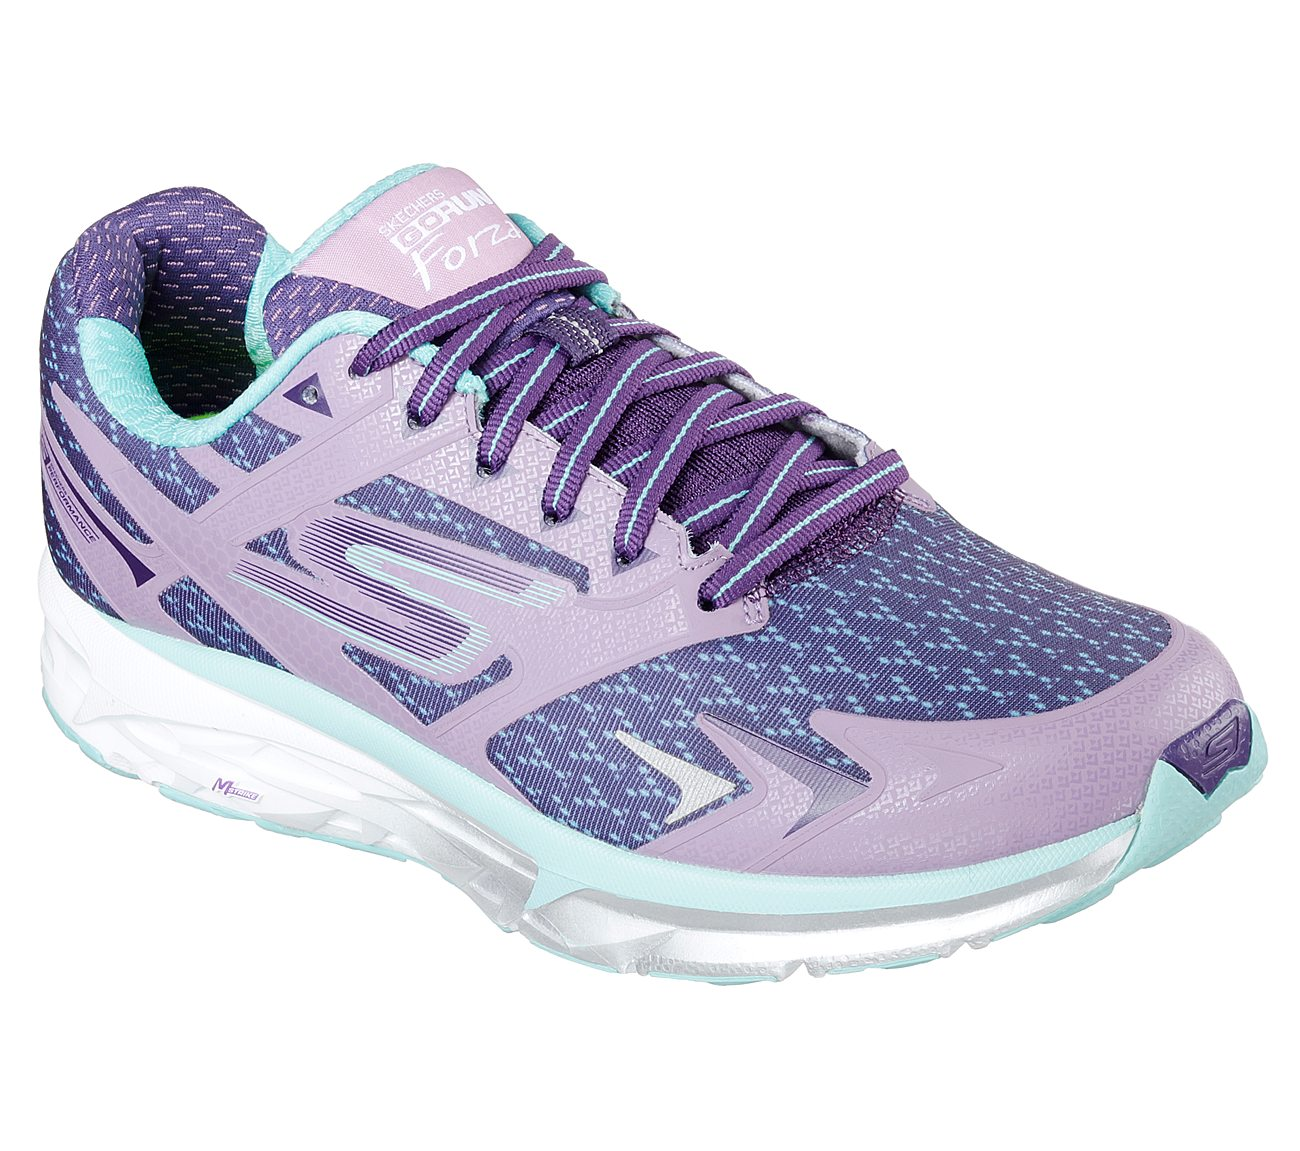 skechers stability shoes